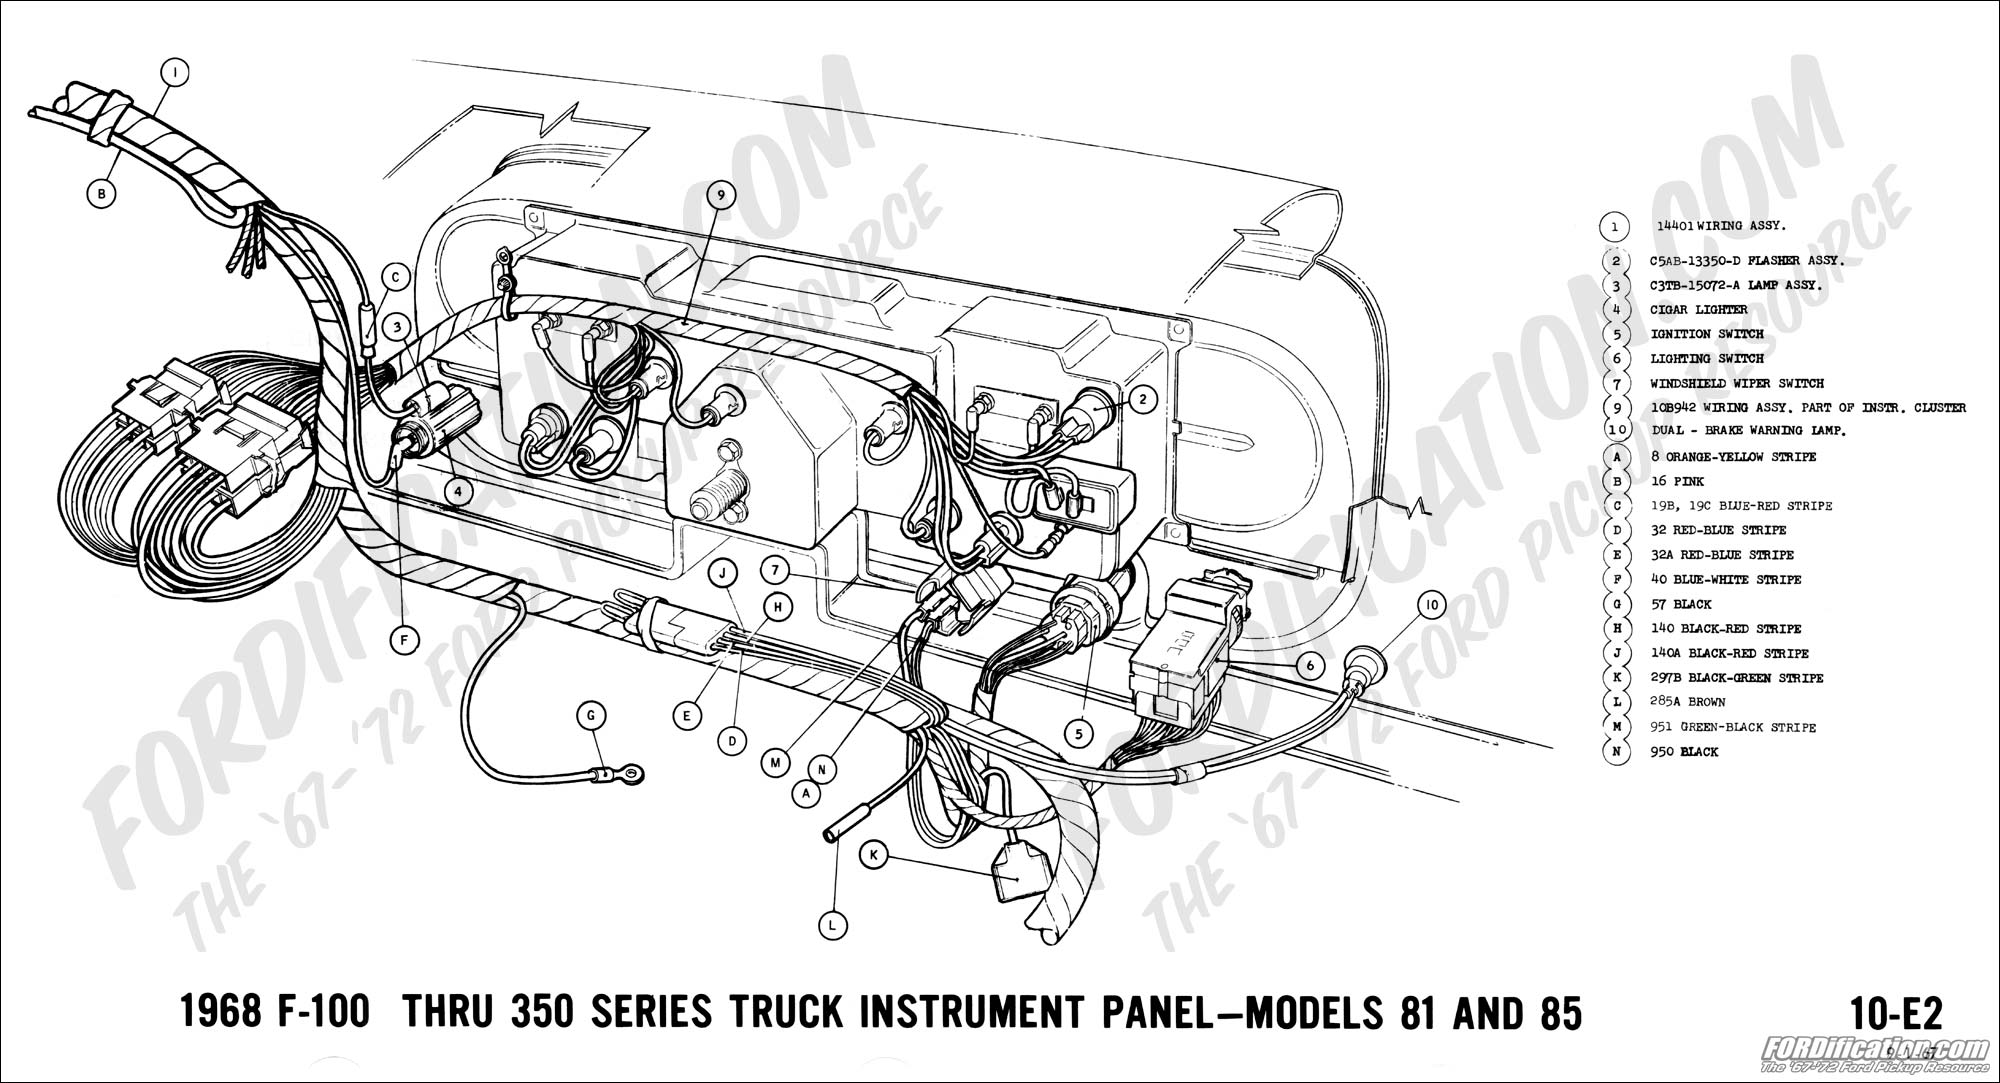 68 Camaro Light Switch Wiring Diagram Schematic Start Building A 1969 Color Ford Truck Technical Drawings And Schematics Section H Rh Fordification Com 1968